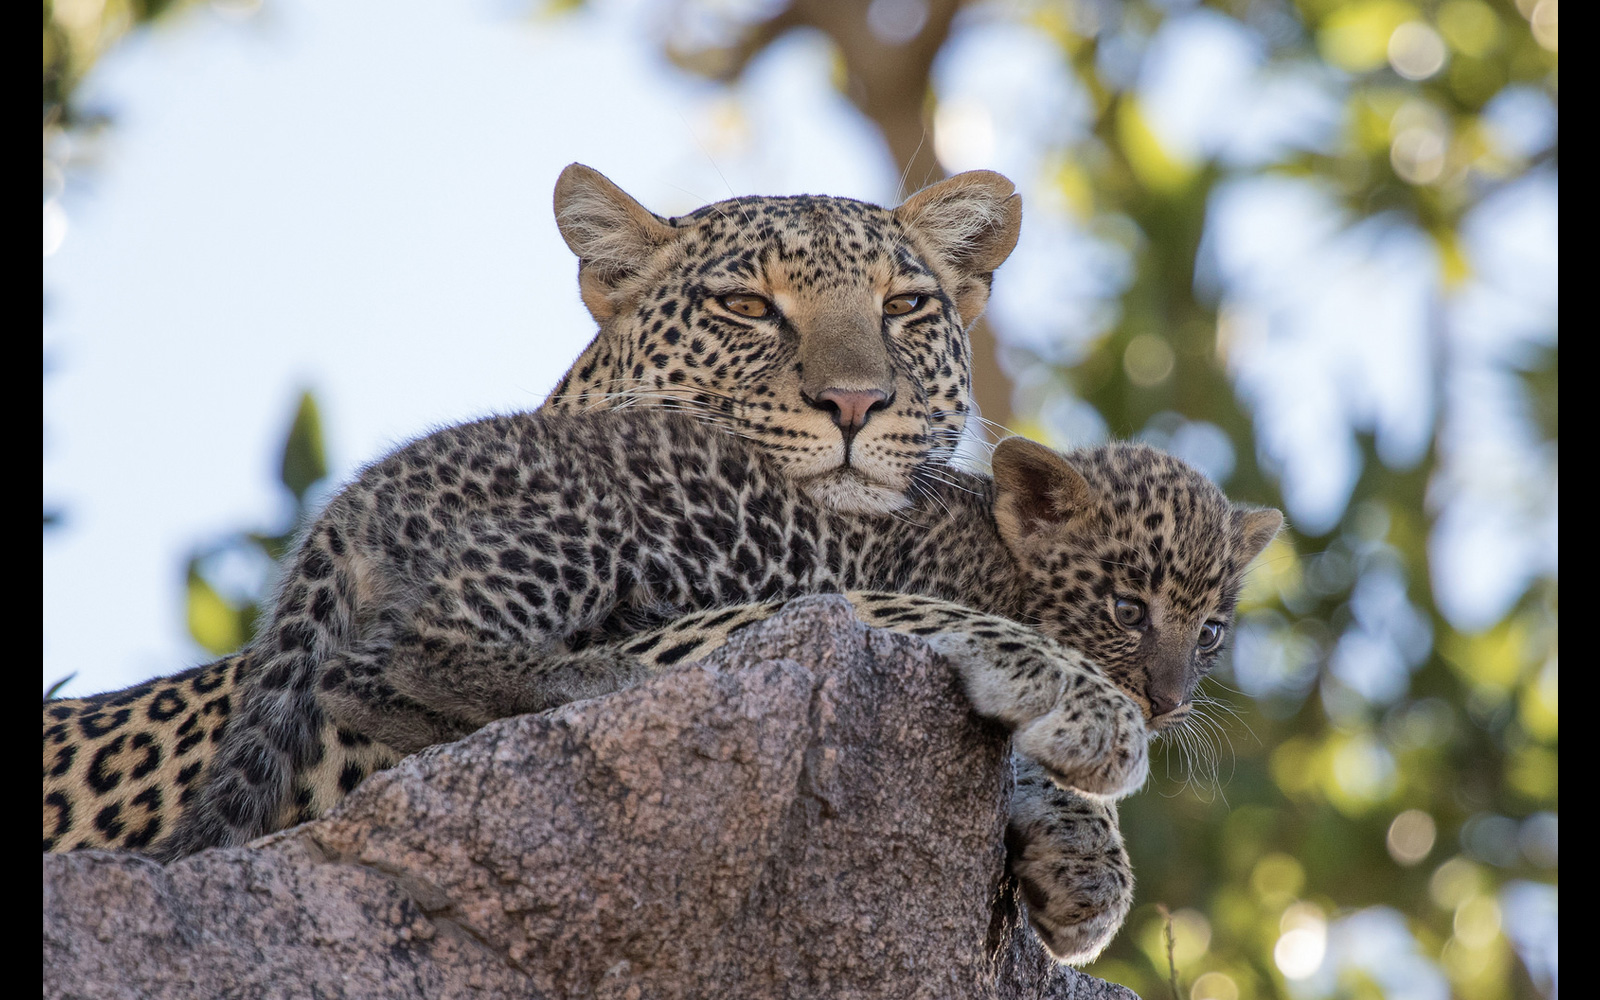 A leopard mother and her cub rest on a rocky hill in Namiri Plains, Serengeti National Park, Tanzania © Pedro Ferreira do Amaral